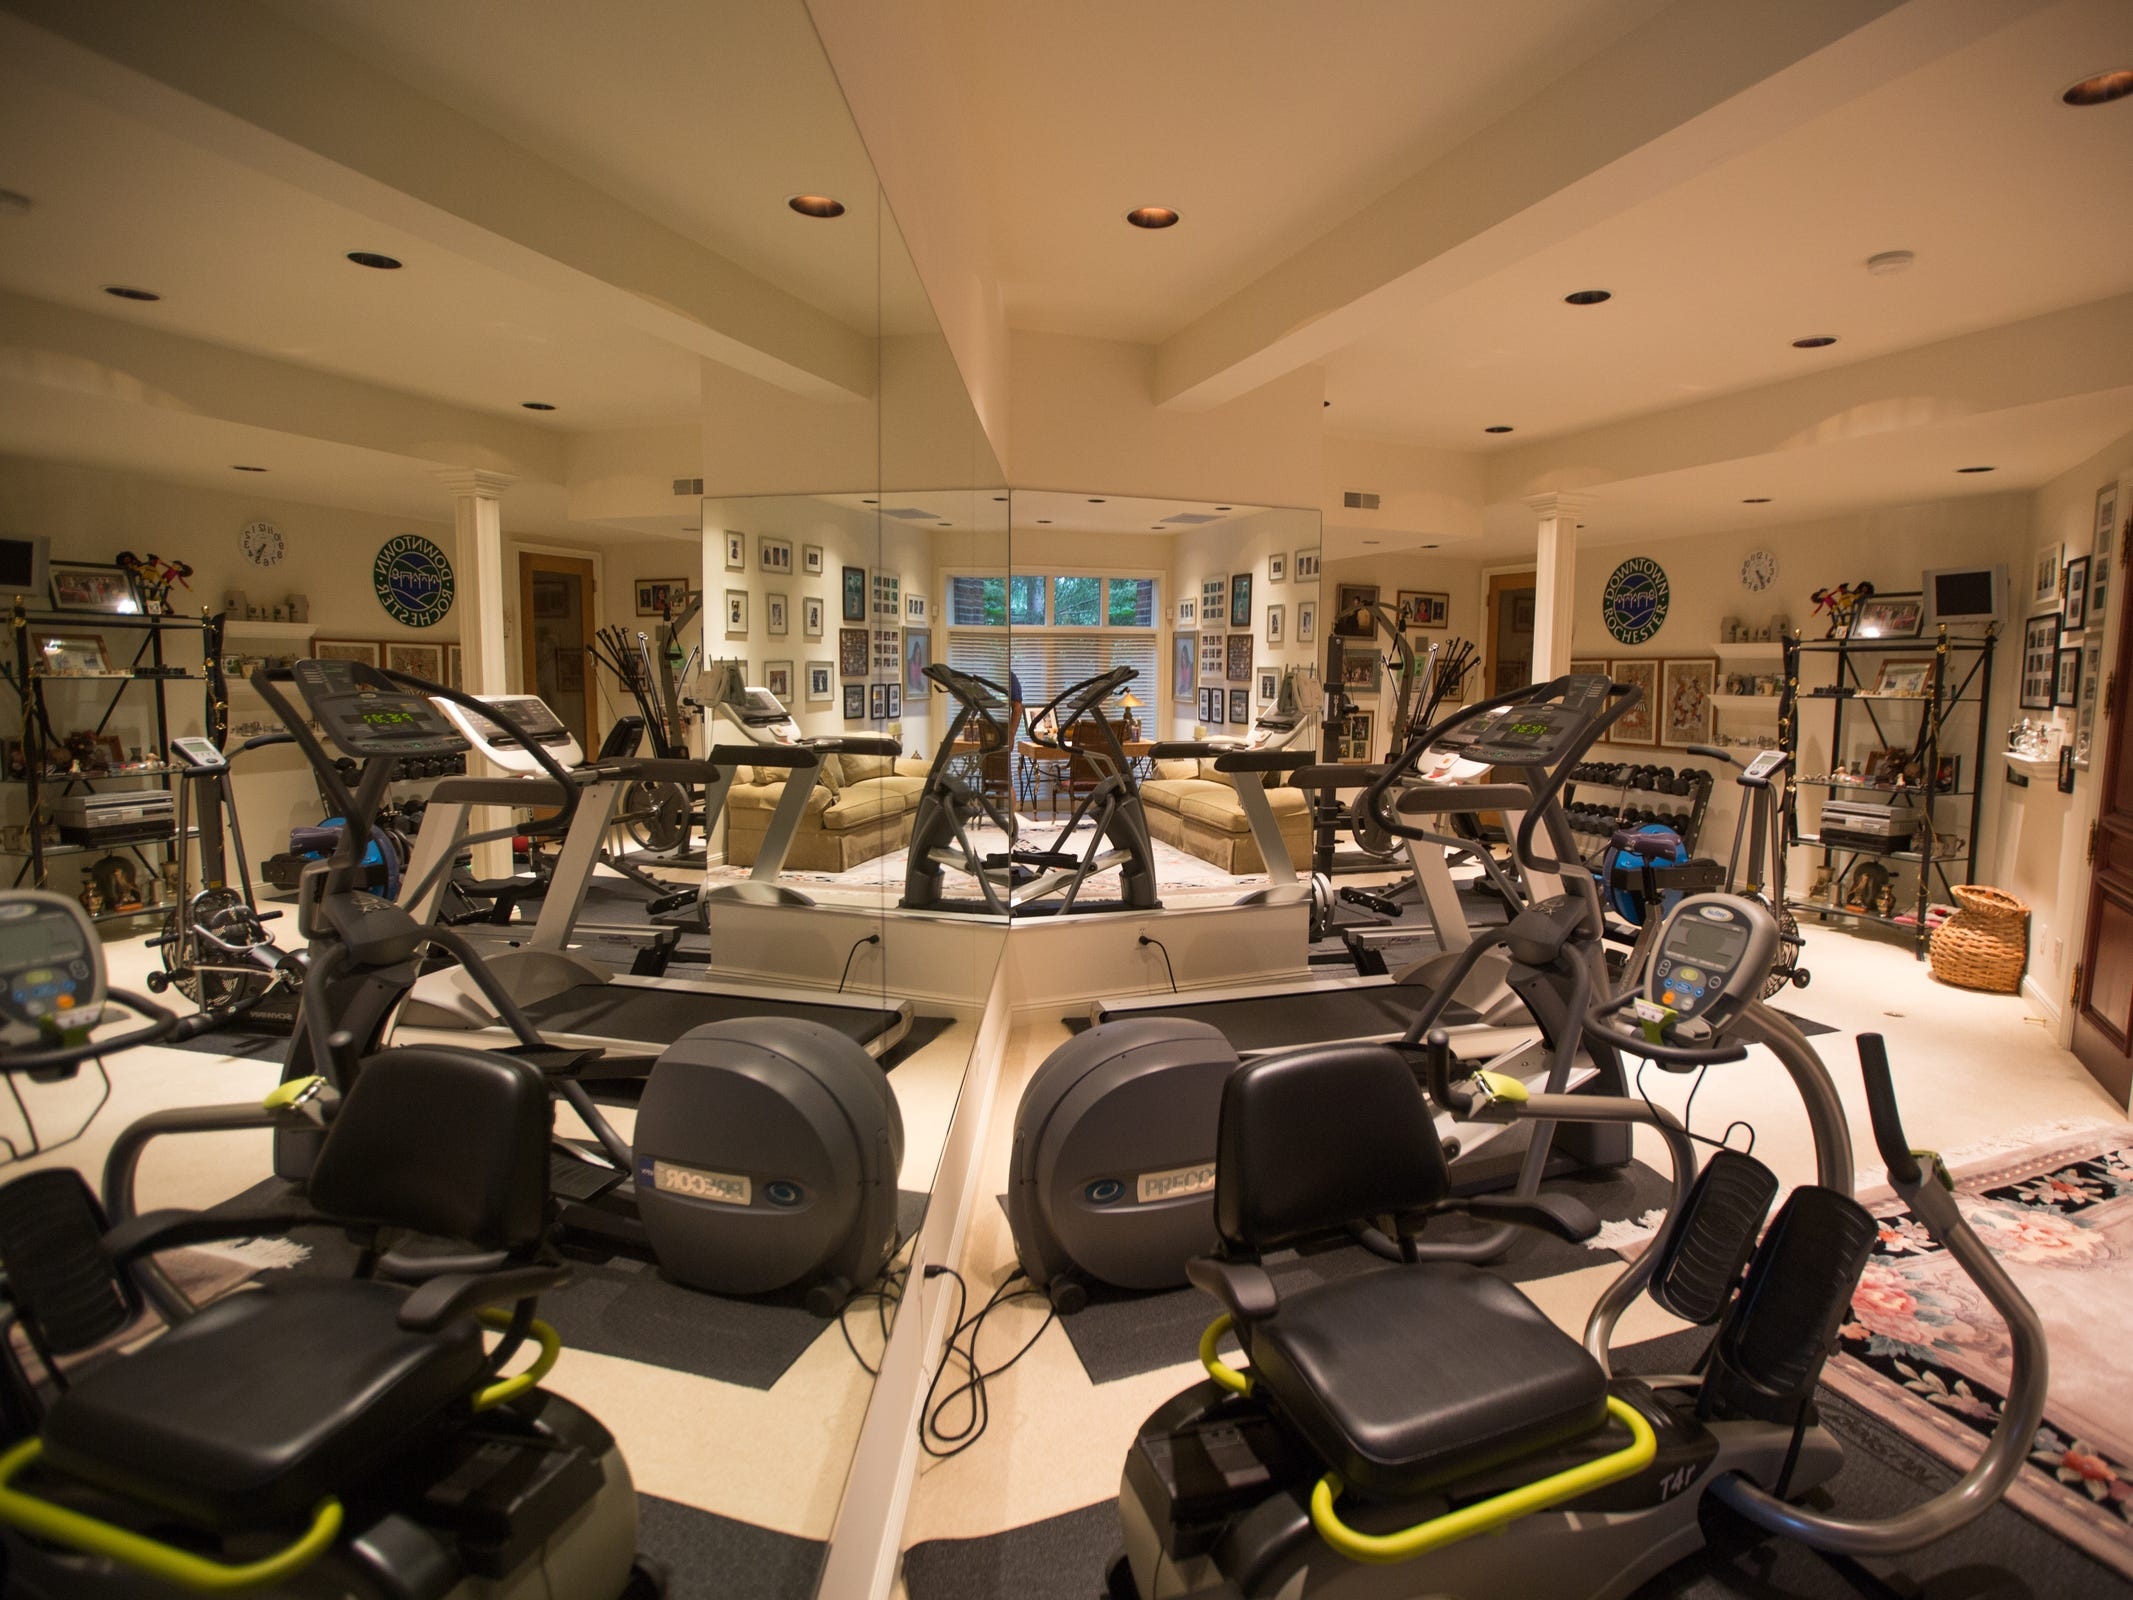 The home's exercise space oi the lower level.